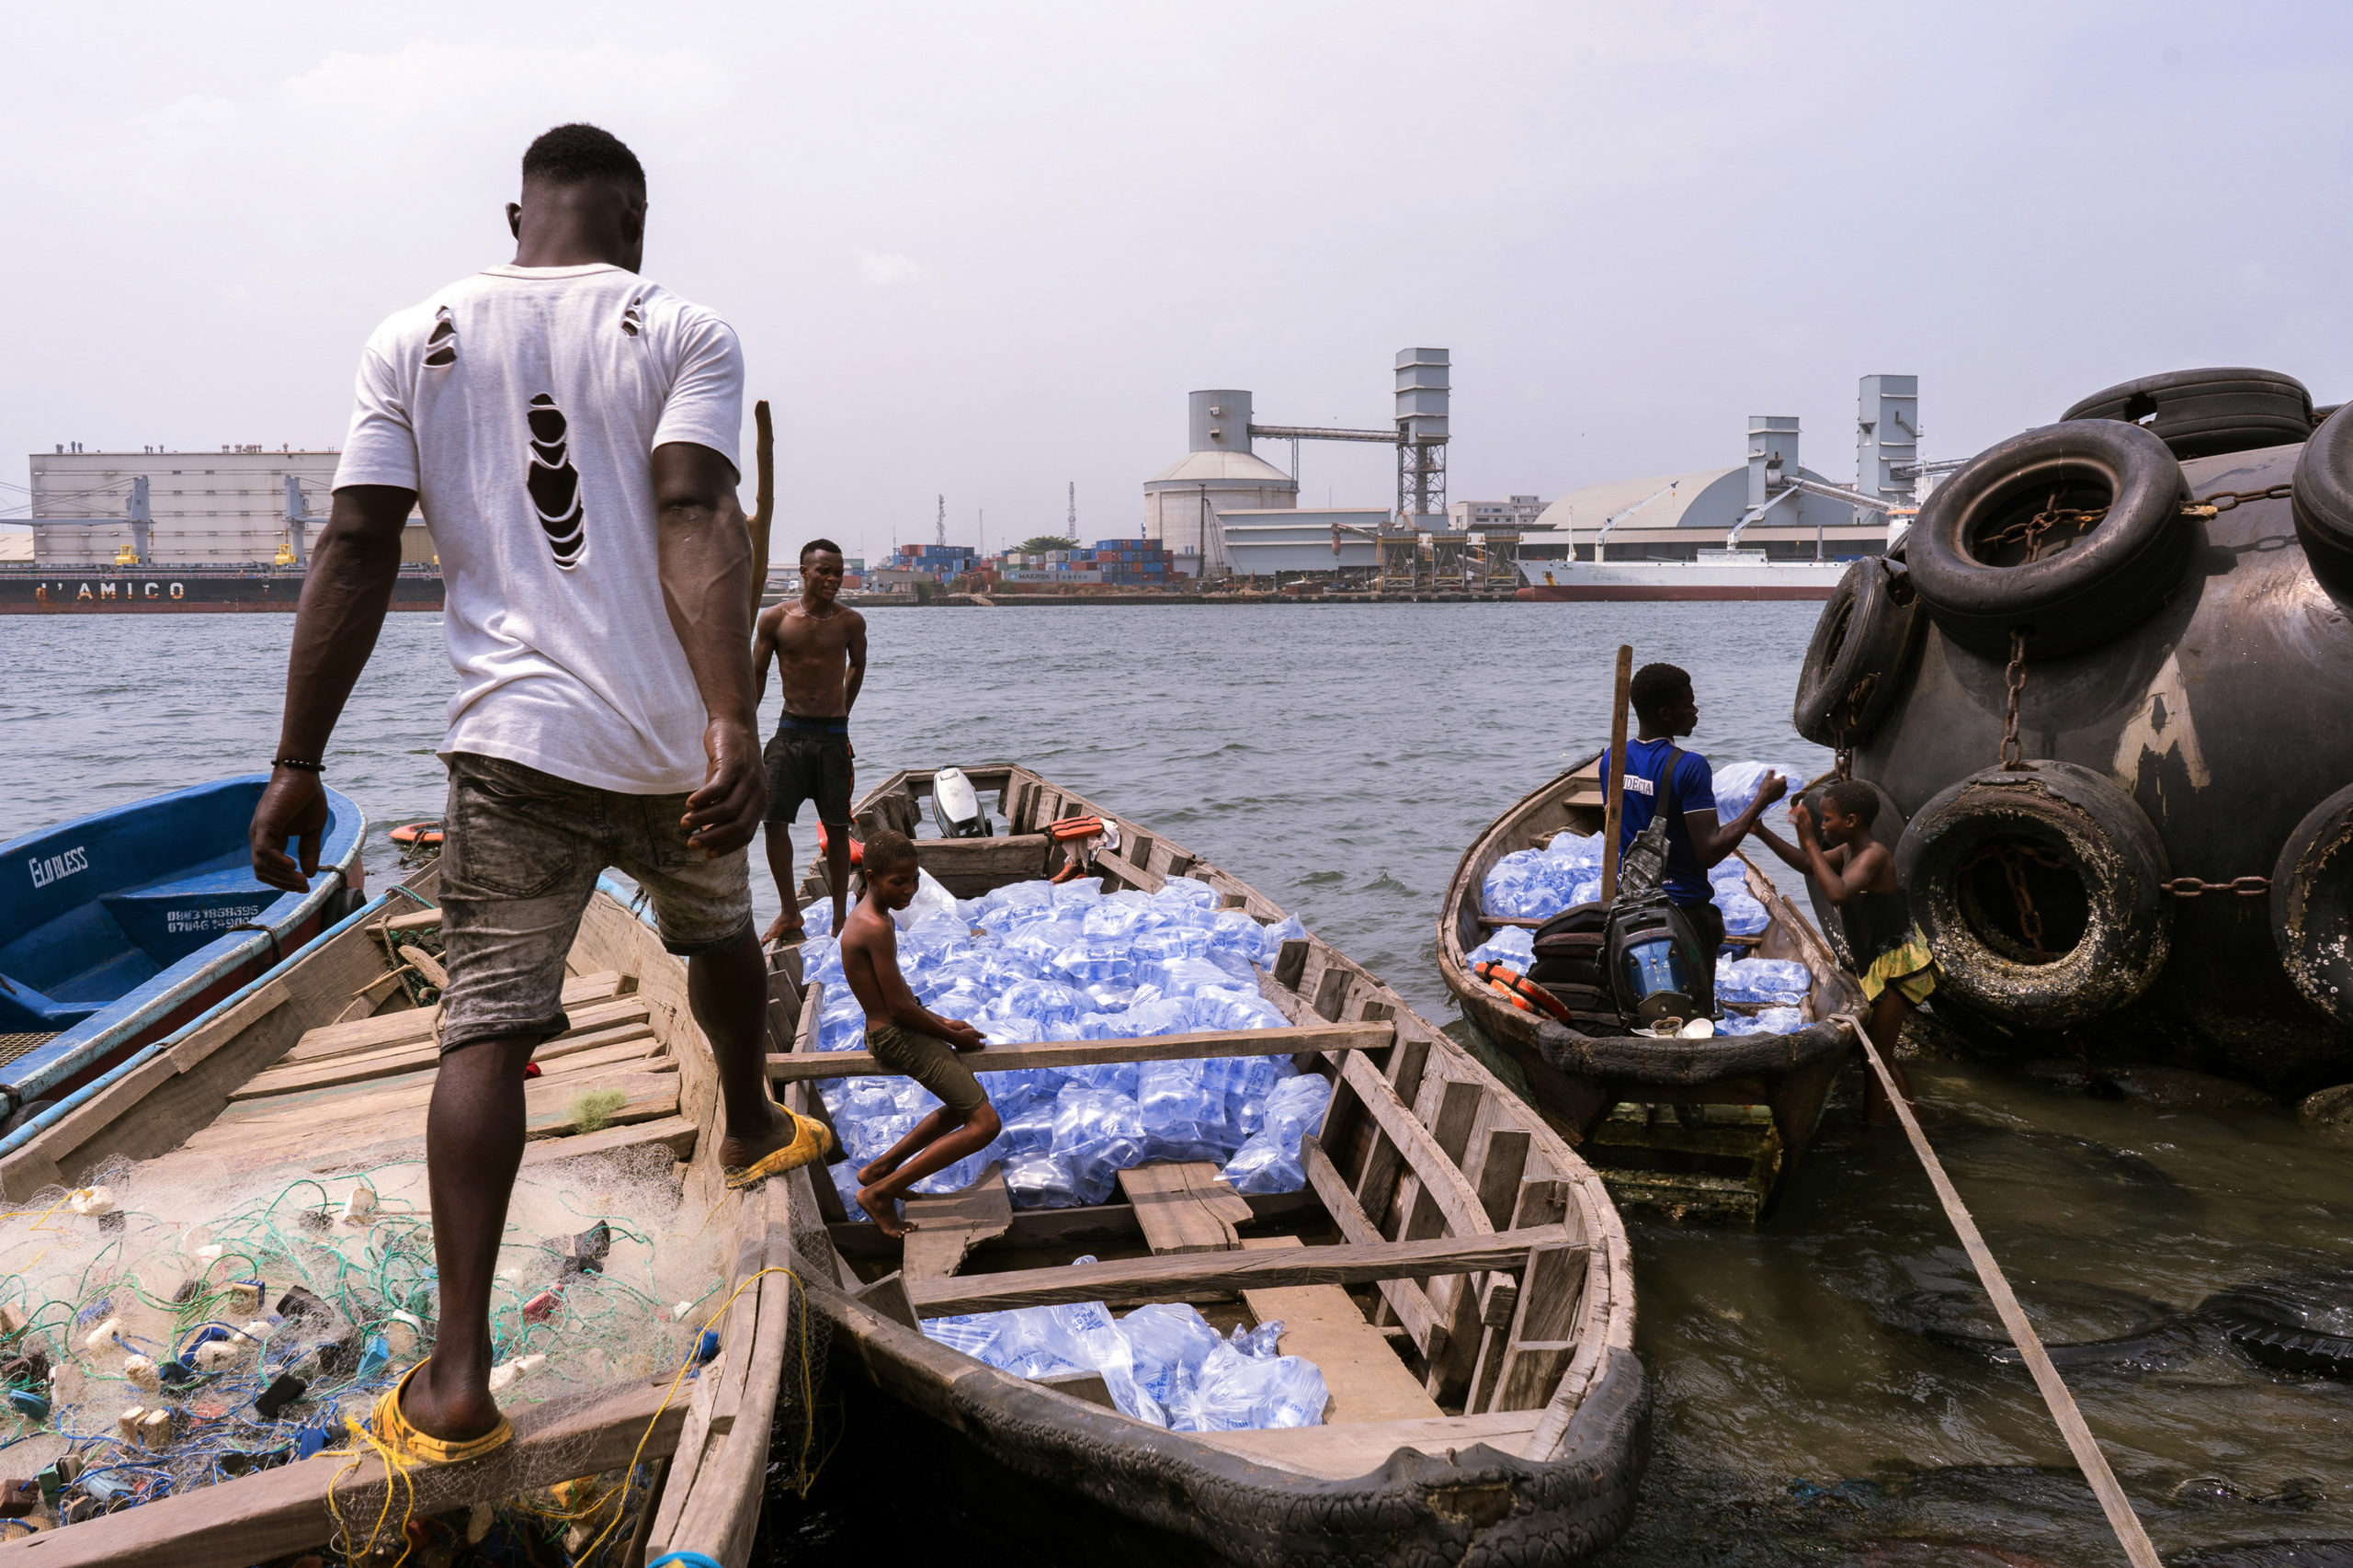 Sagbo Kodji shops bring in pure water in plastic bags from mainland Lagos, and then often employ children to carry them to their shops. [PHOTO CREDIT: Nengi Nelson]